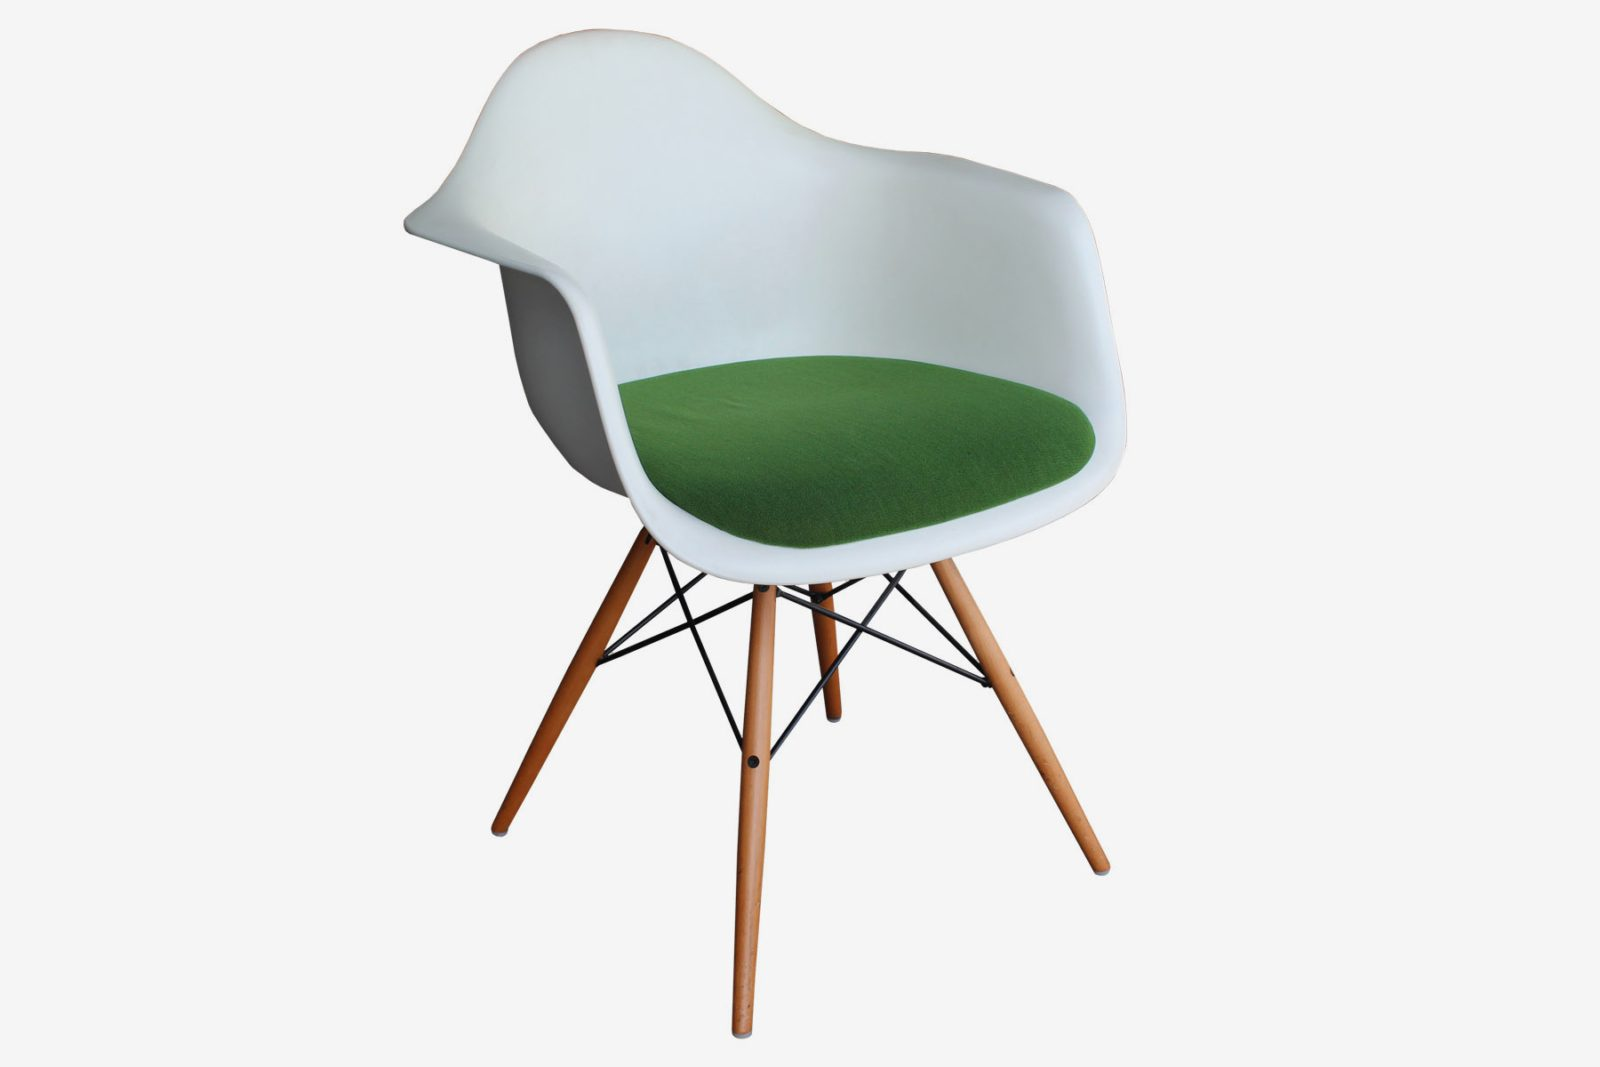 Vitra Eames Armchair Vitra Eames Moroso Bloomy And Walter Knoll Egans A Shift In